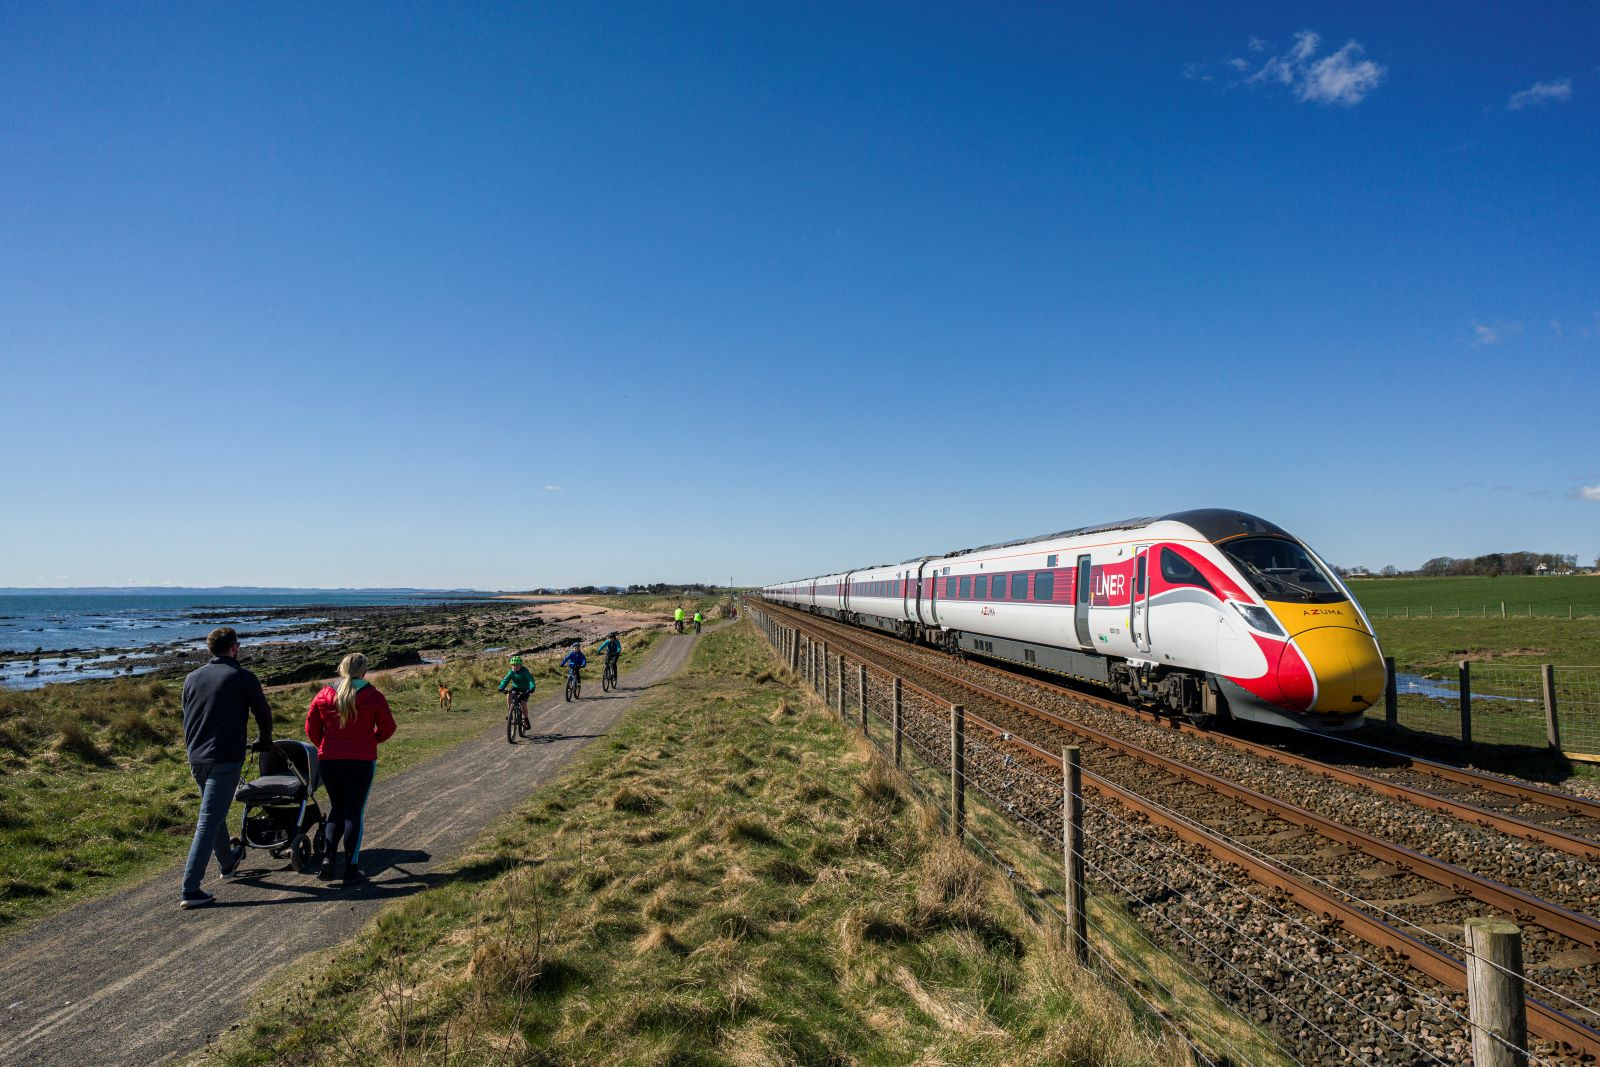 LNER Sees Strong Demand For Services Over Summer